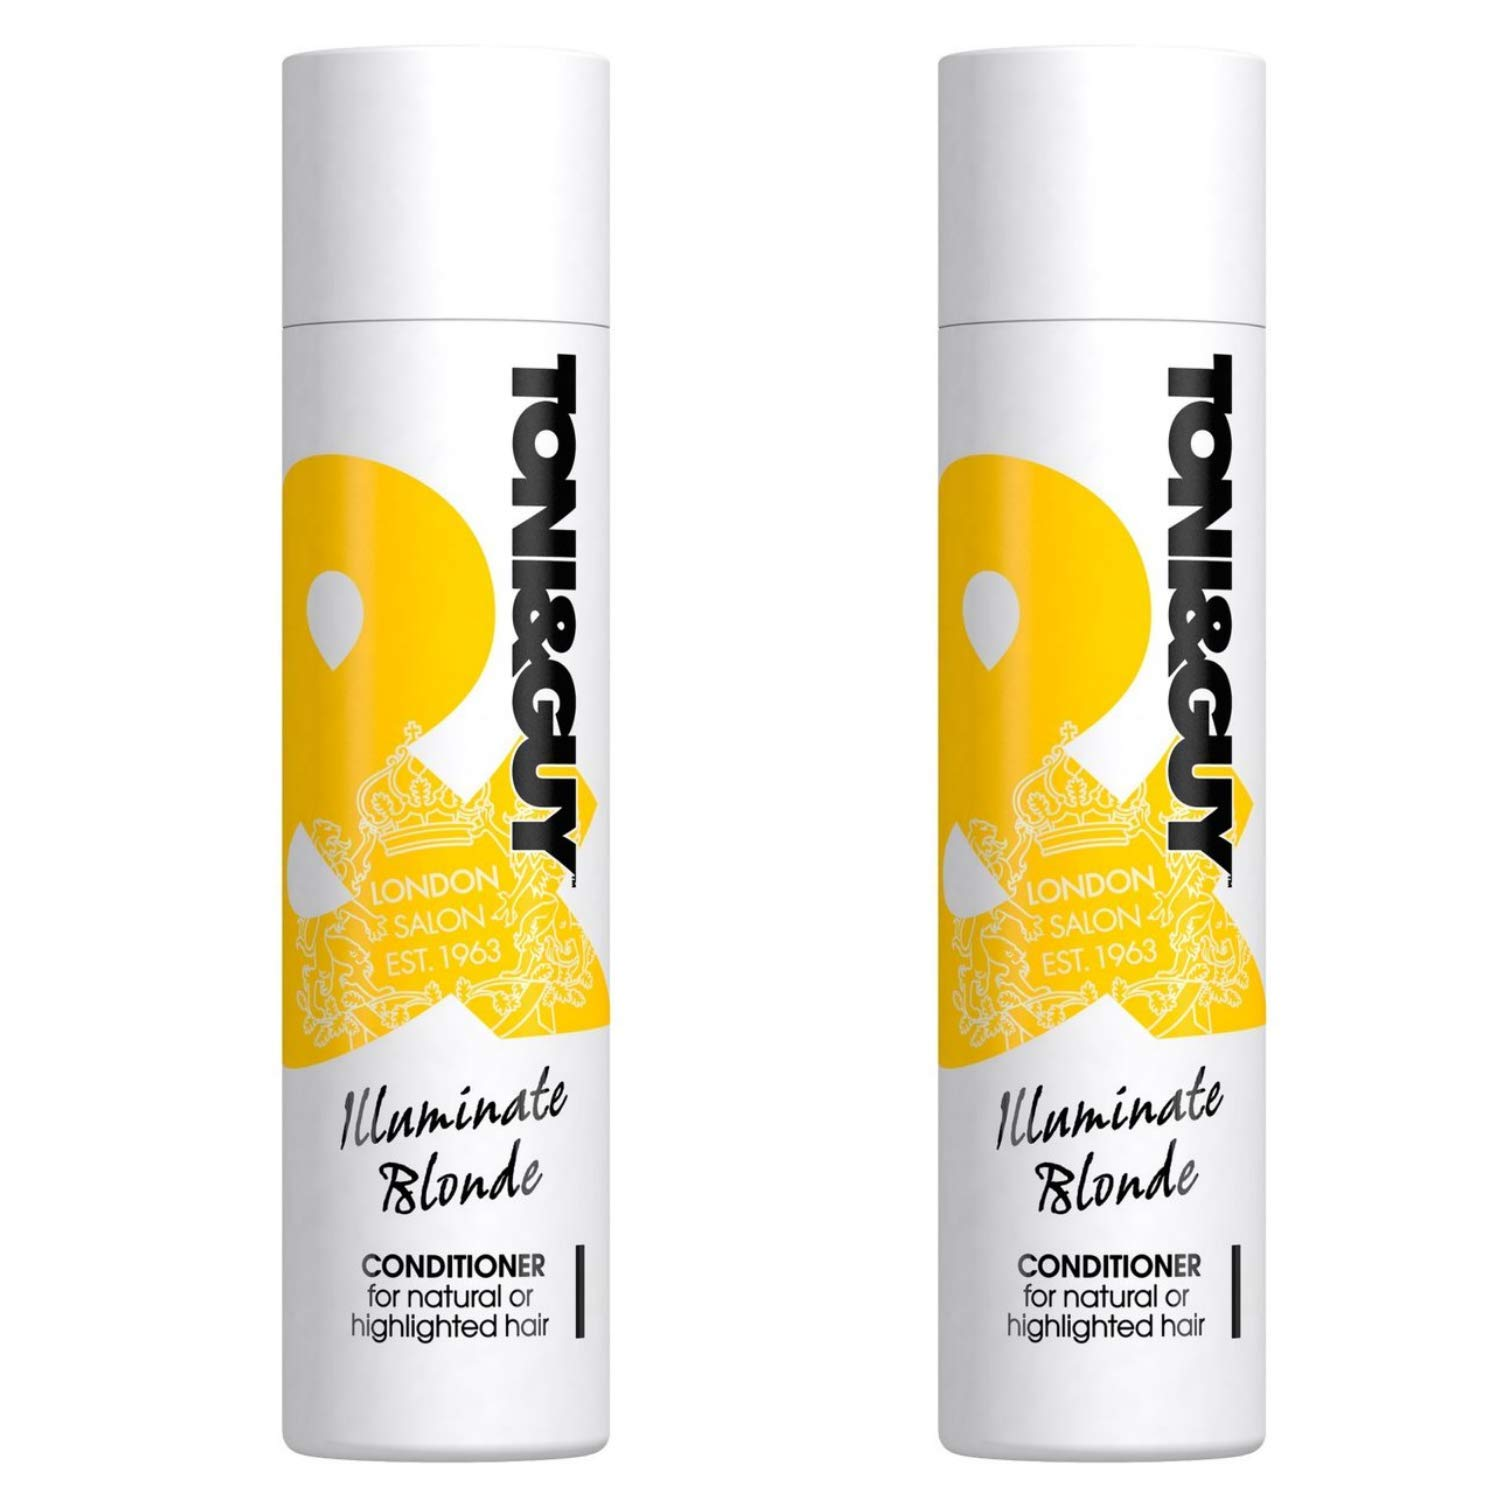 Toni & Guy Women's Illuminate Blonde Conditioner with Pearl Extract - 8.5 Fl Oz / 250 mL x 2 Pack